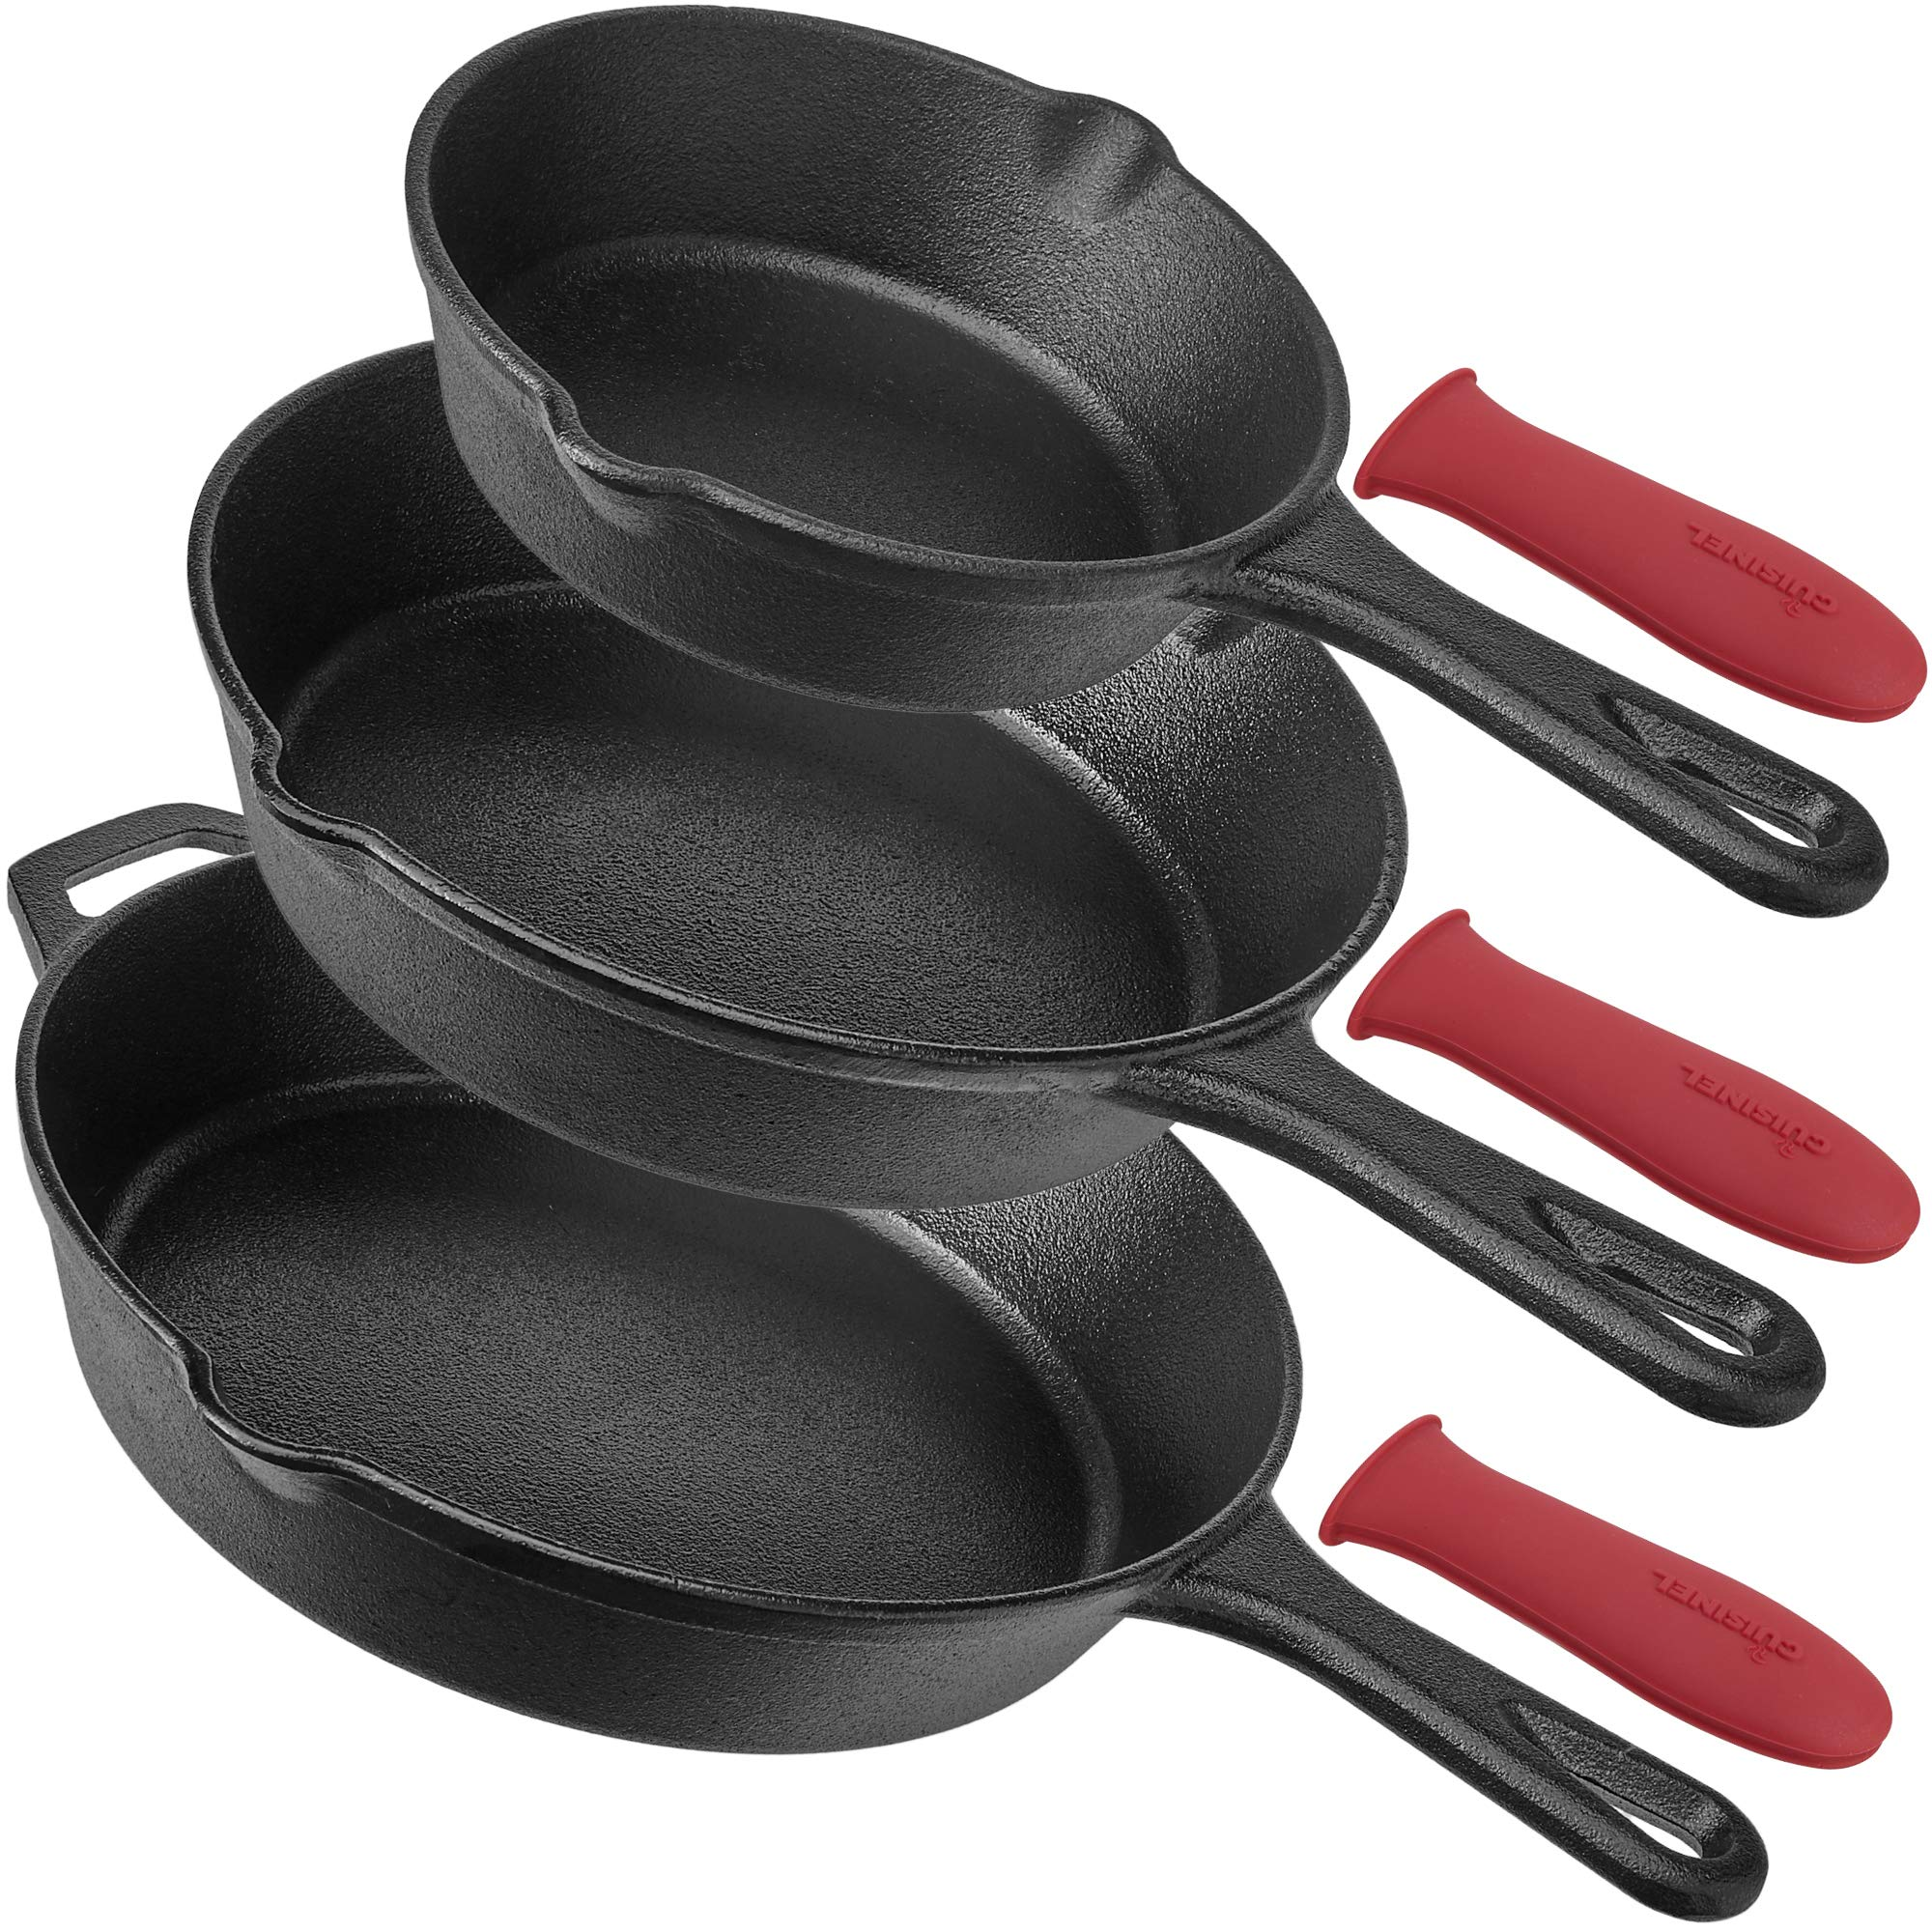 cuisinel Pre-Seasoned Cast Iron Skillet 3-Piece Chef Set (6 8 10-Inch) Oven Safe Cookware | 3 Heat-Resistant Holders | Indoor and Outdoor Use | G, 6-Inch 8-Inch Inch, Black